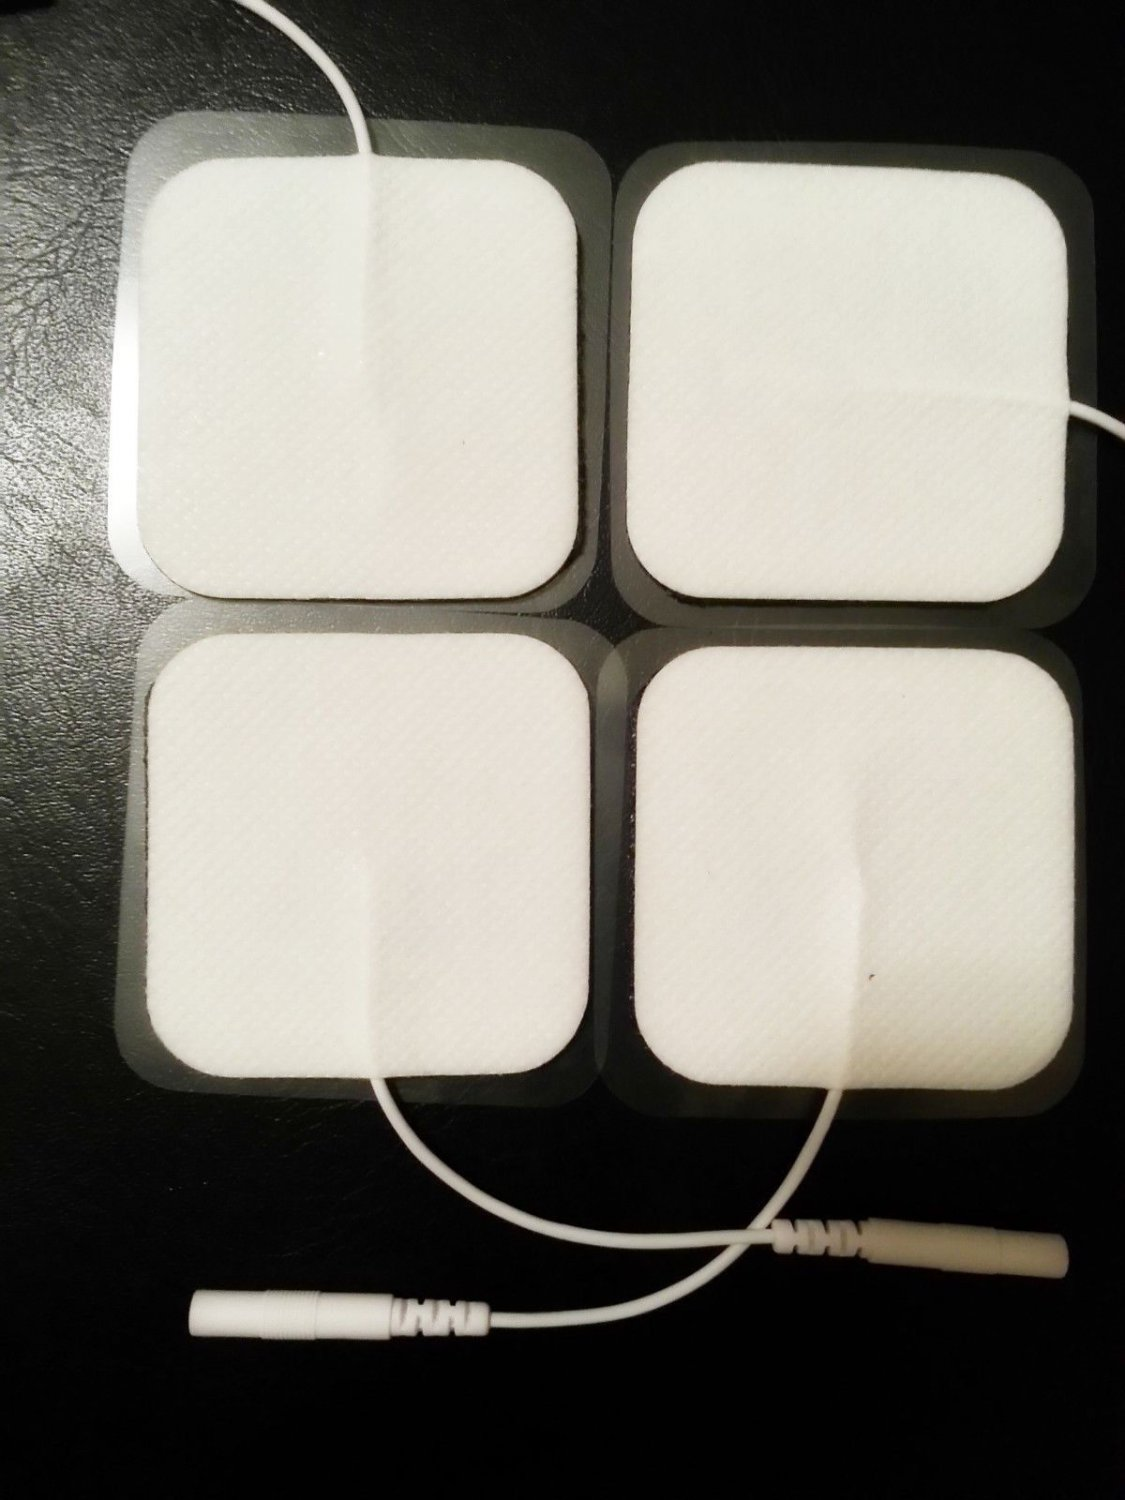 8 PC SQUARE MASSAGE PADS FOR NEOTEK DIGITAL TENS INTENSITY 12, 10, AND TENS AA